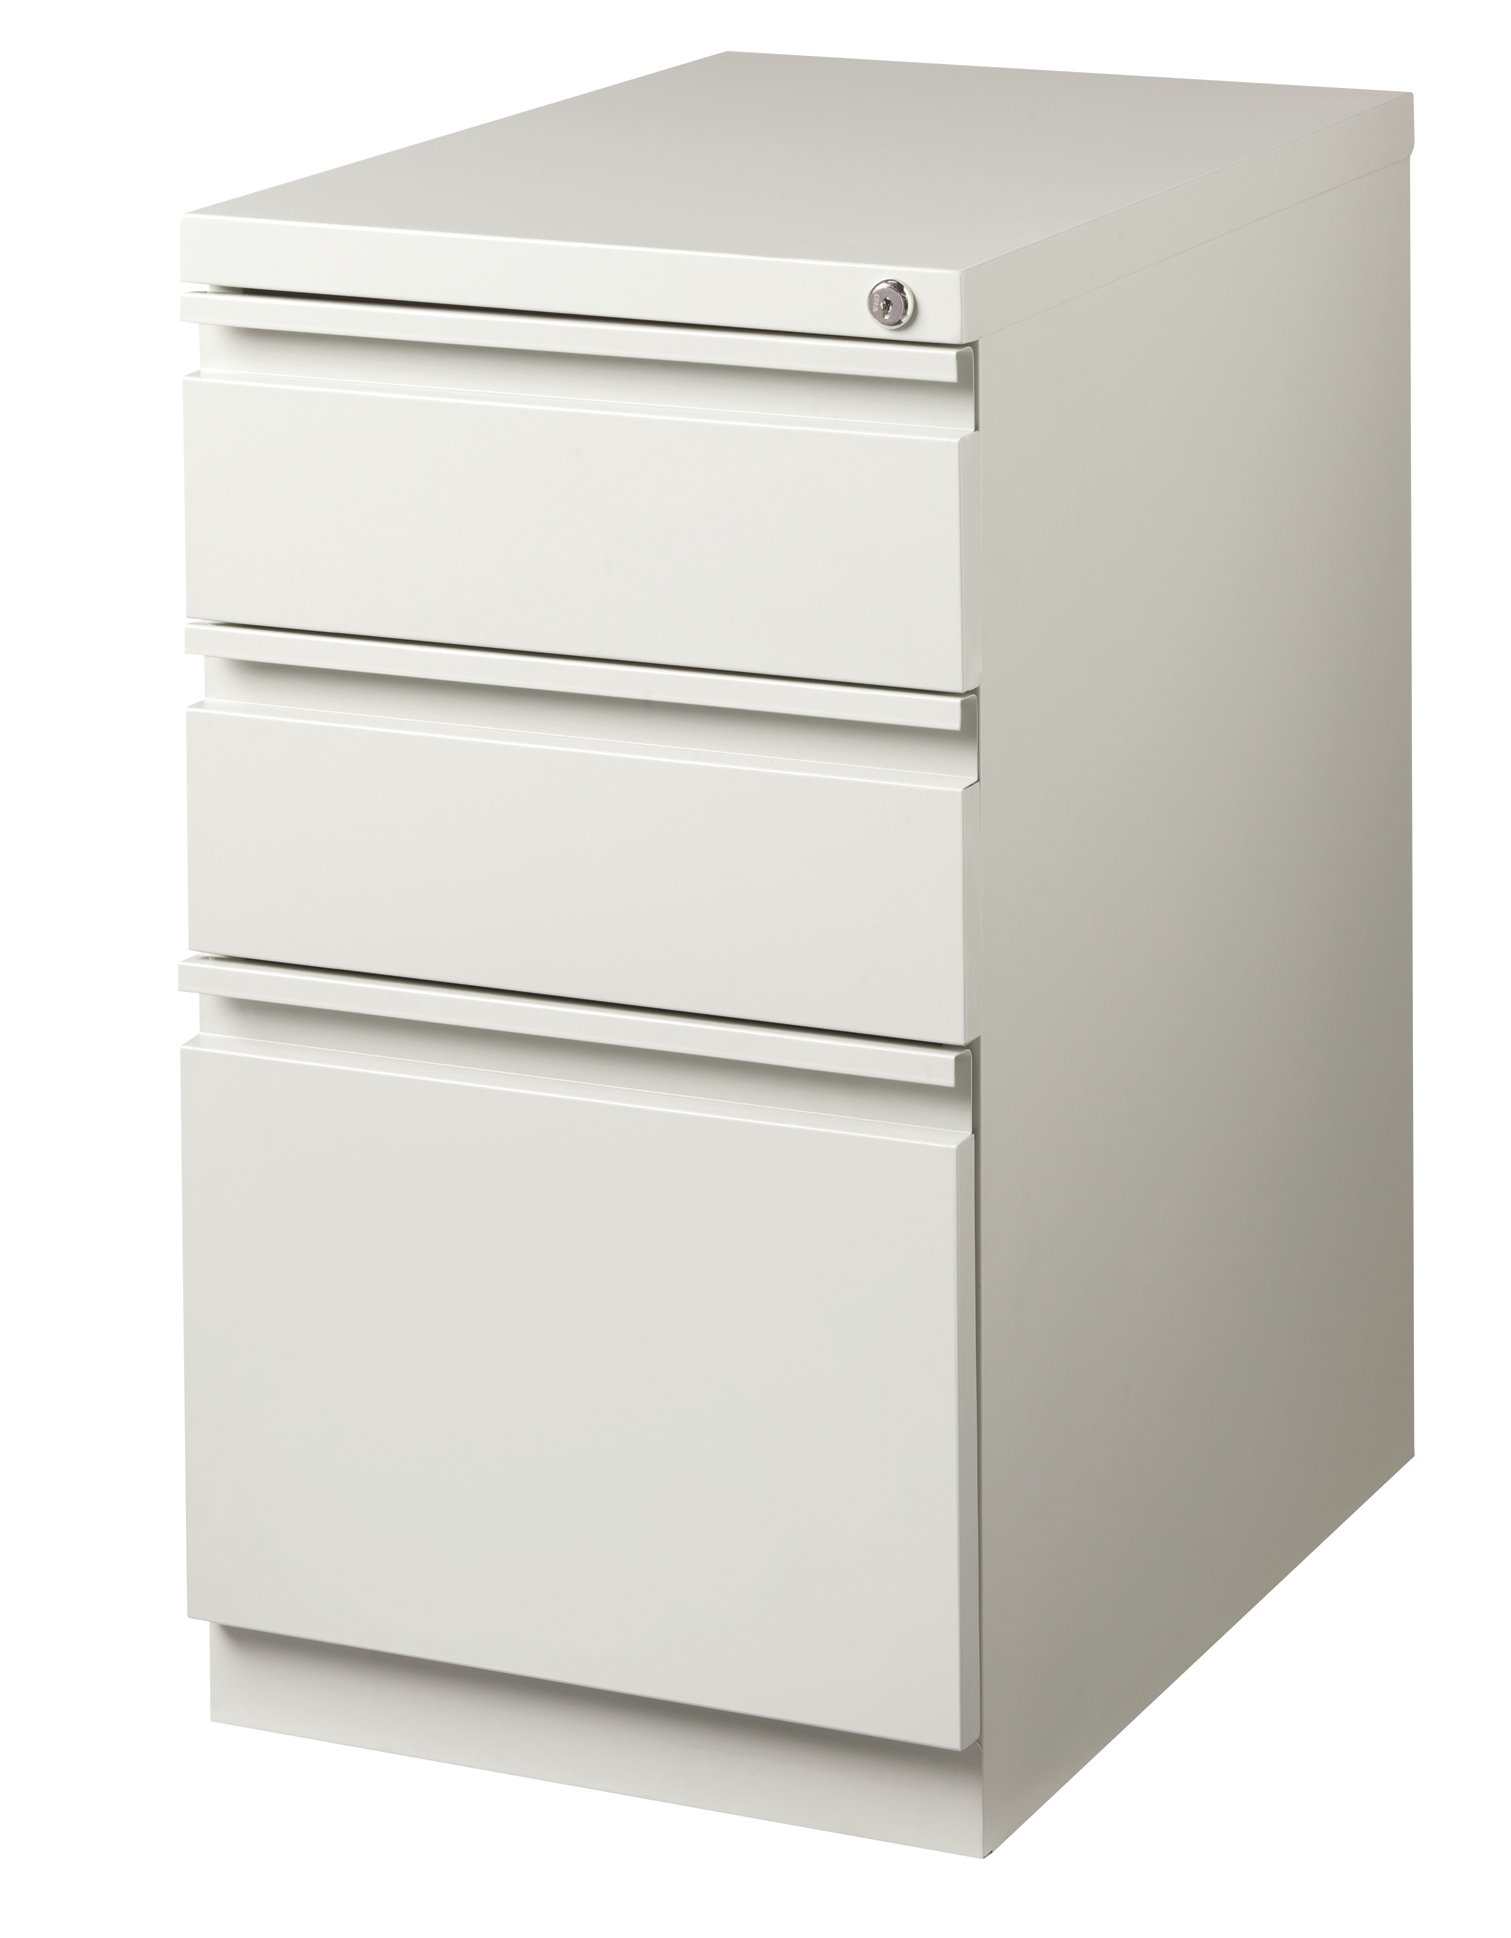 Office Dimensions 20'' File Cabinet w/ Concealed Wheels, 2 Storage Drawer and 1 File Drawer